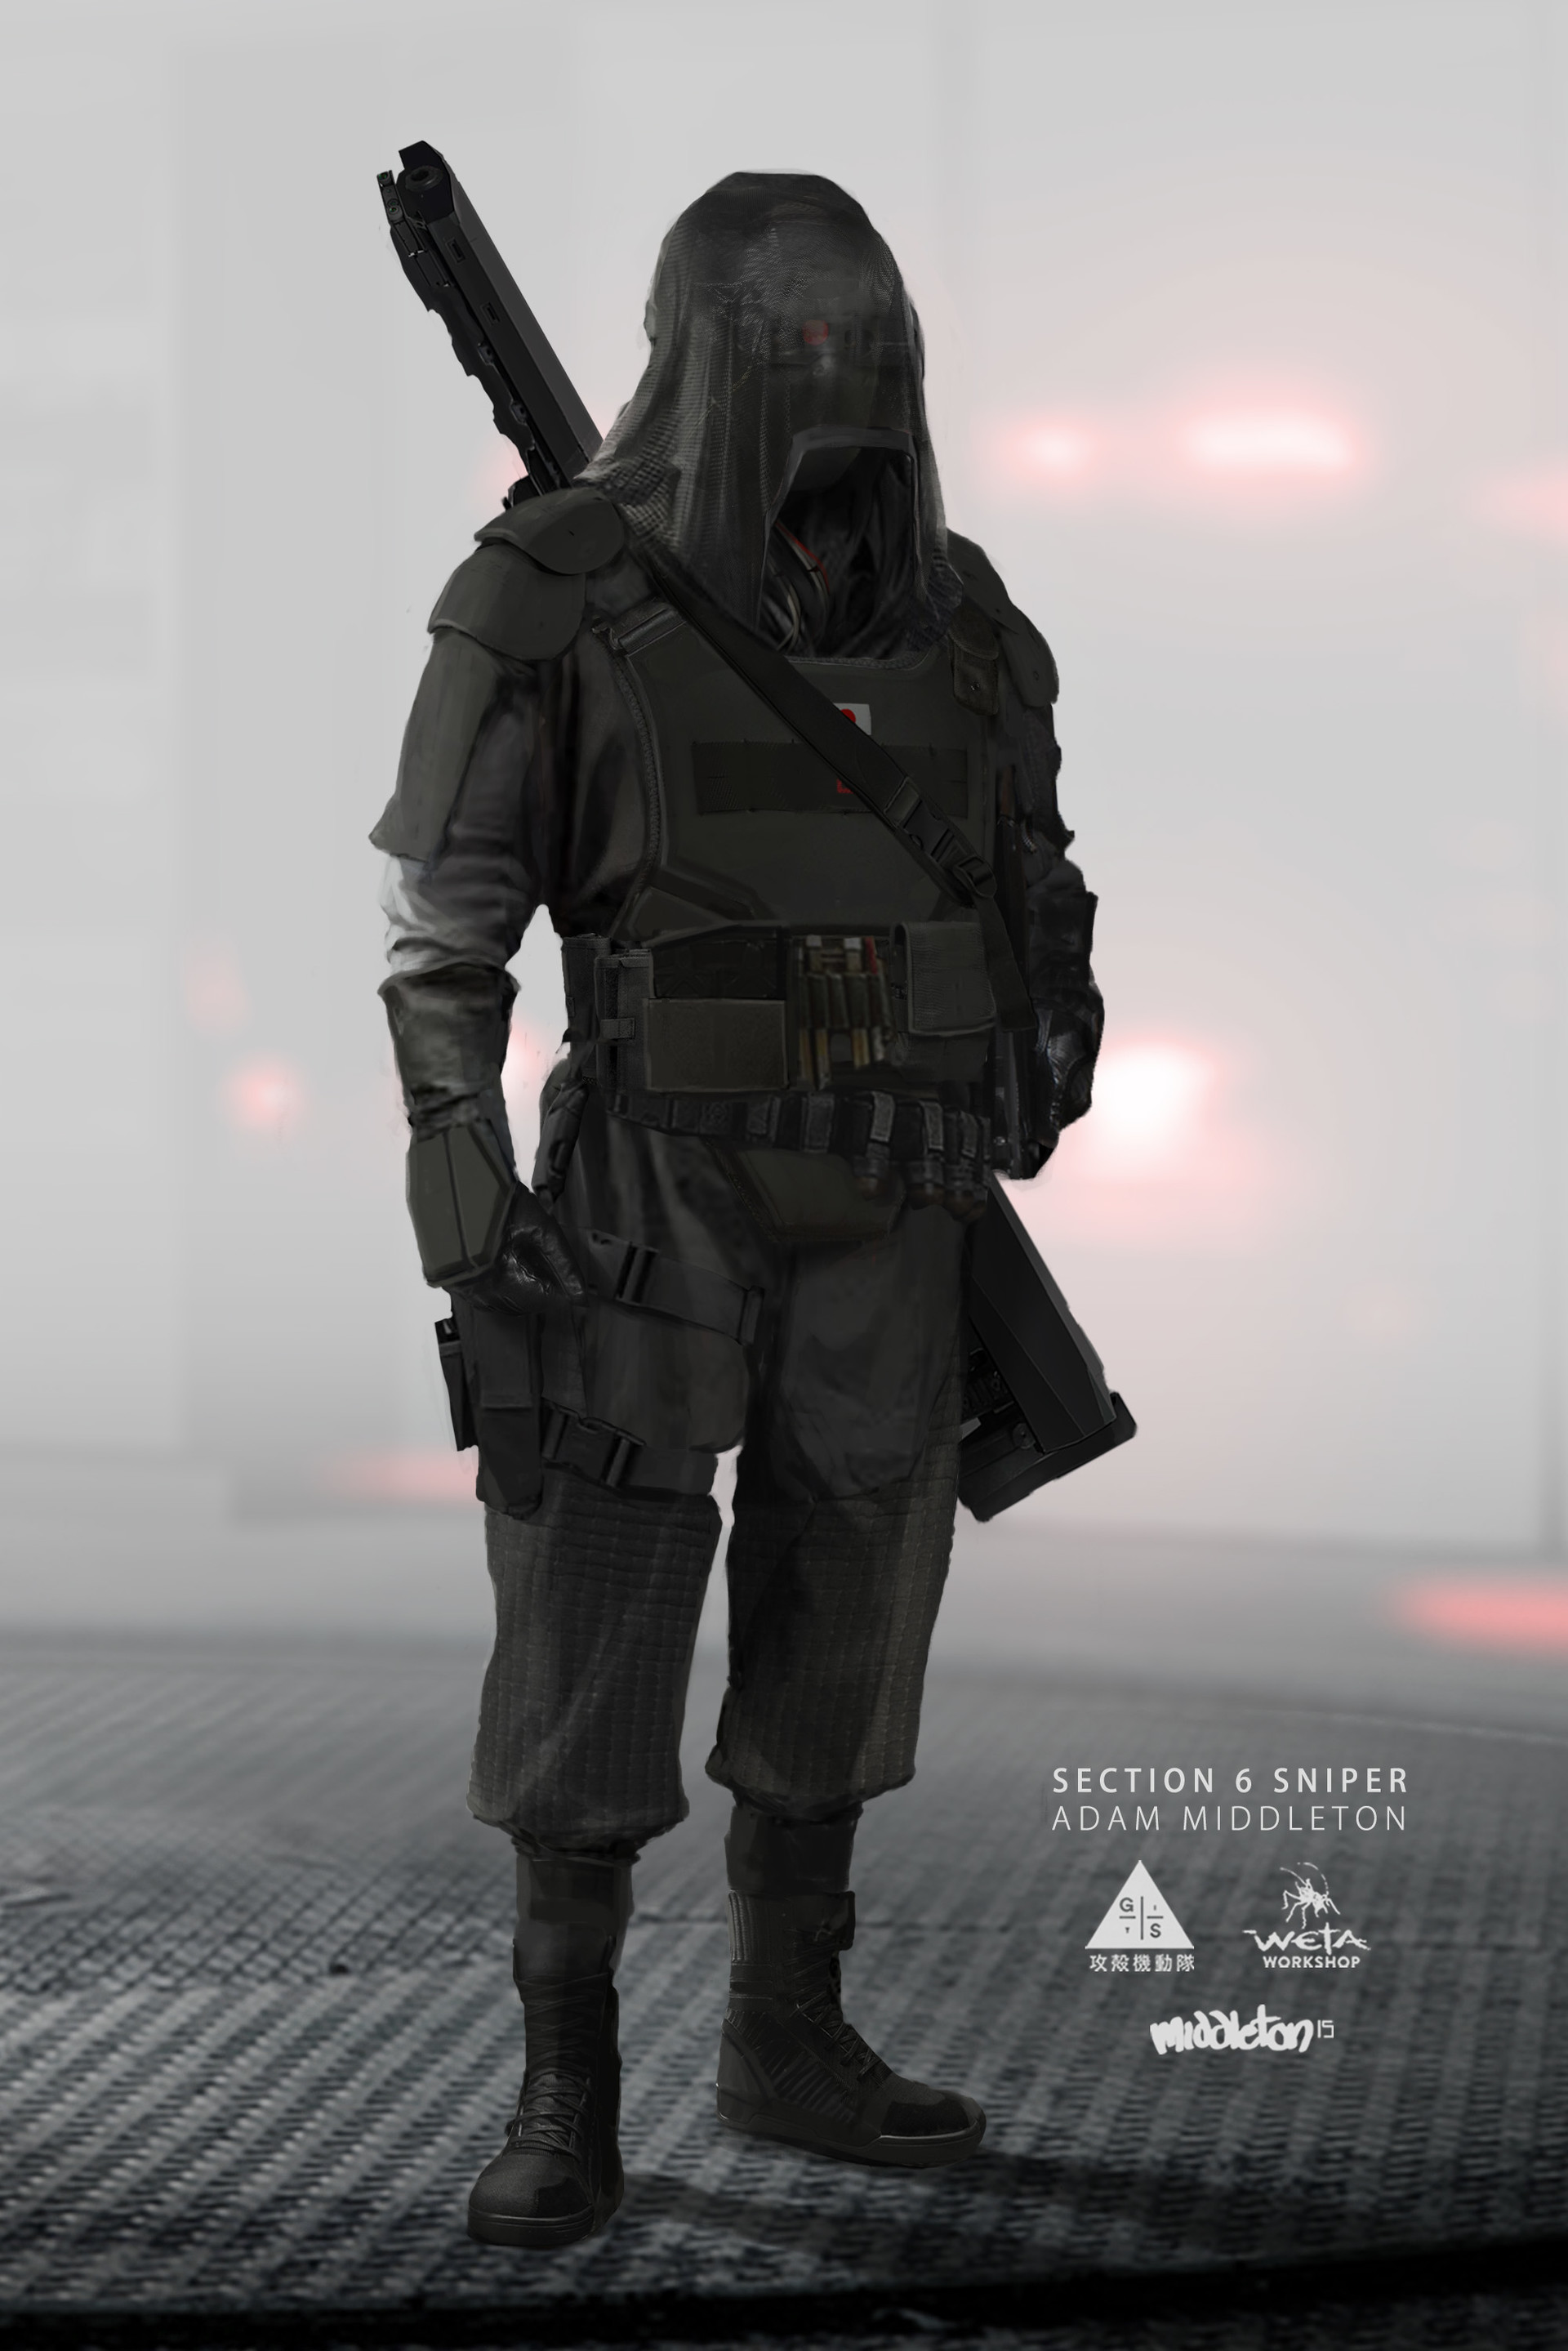 Section 6 Sniper